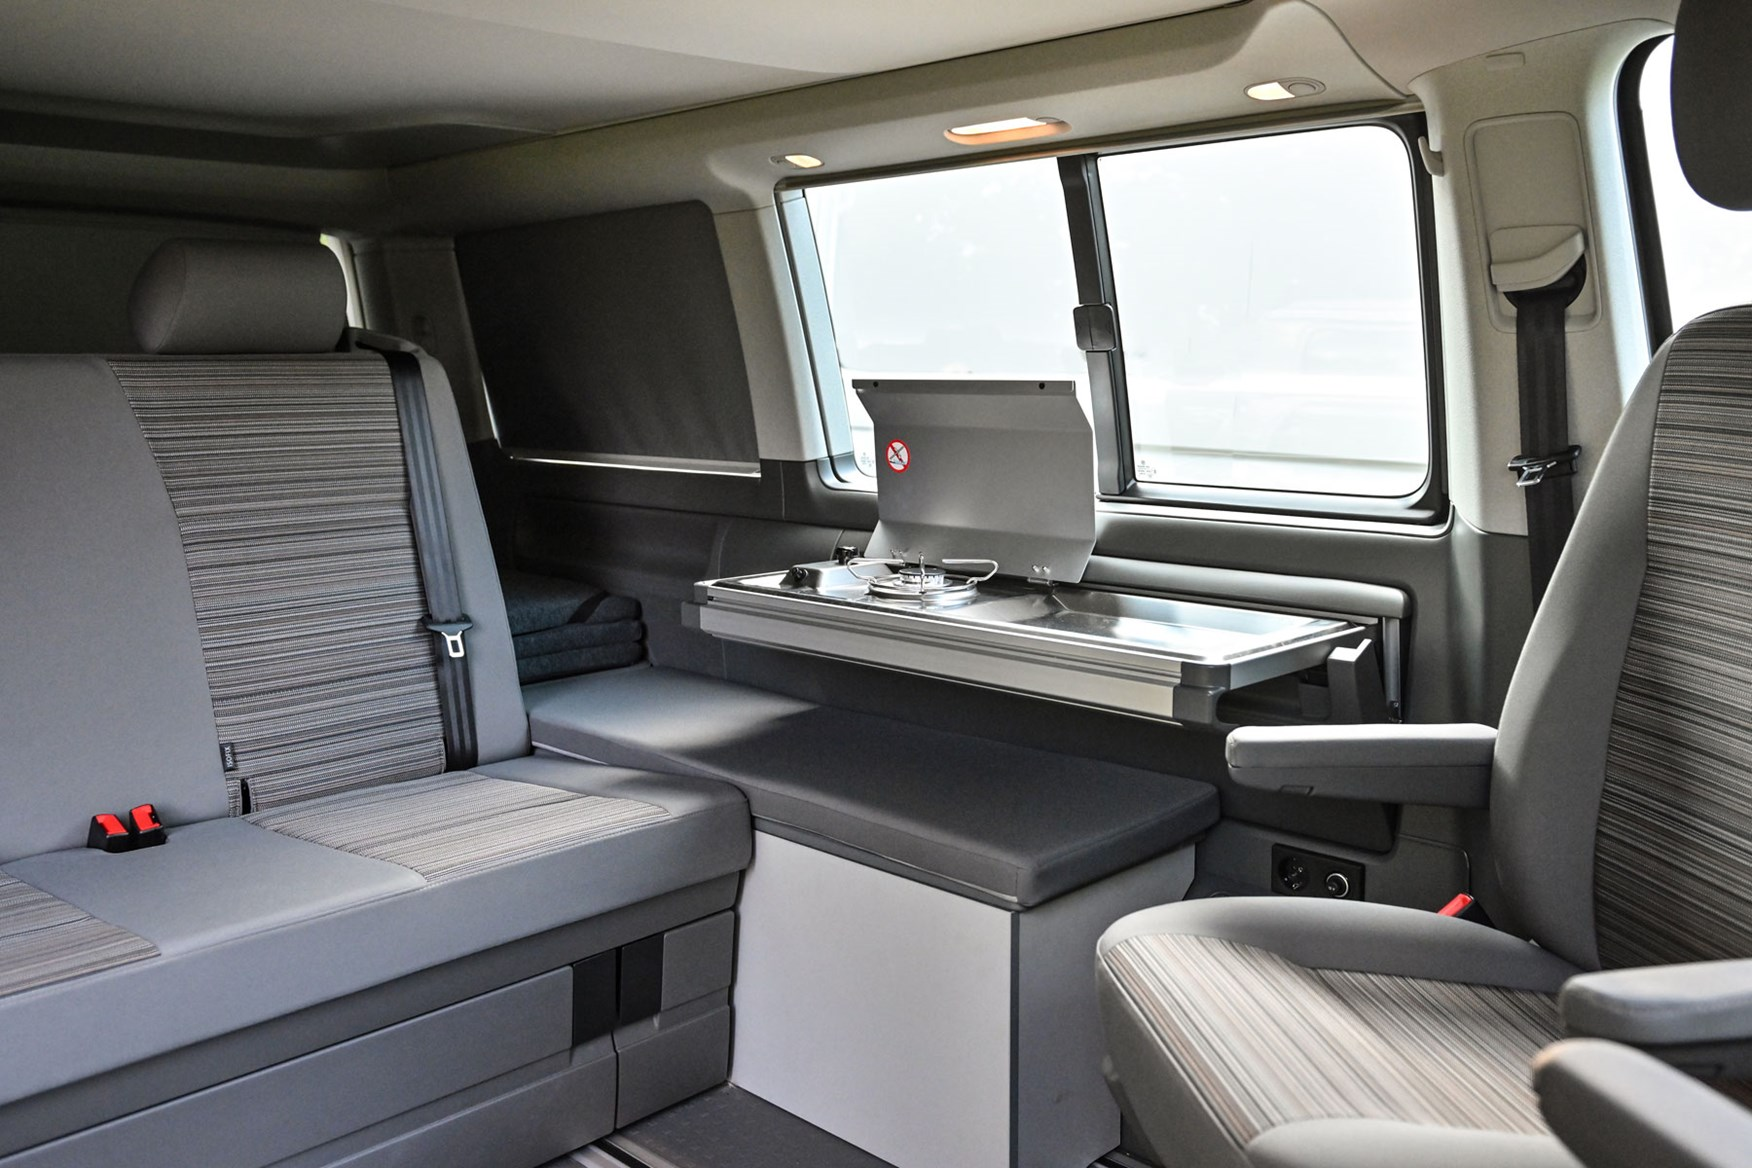 Volkswagen launches new California camper in T6 1 form | Parkers